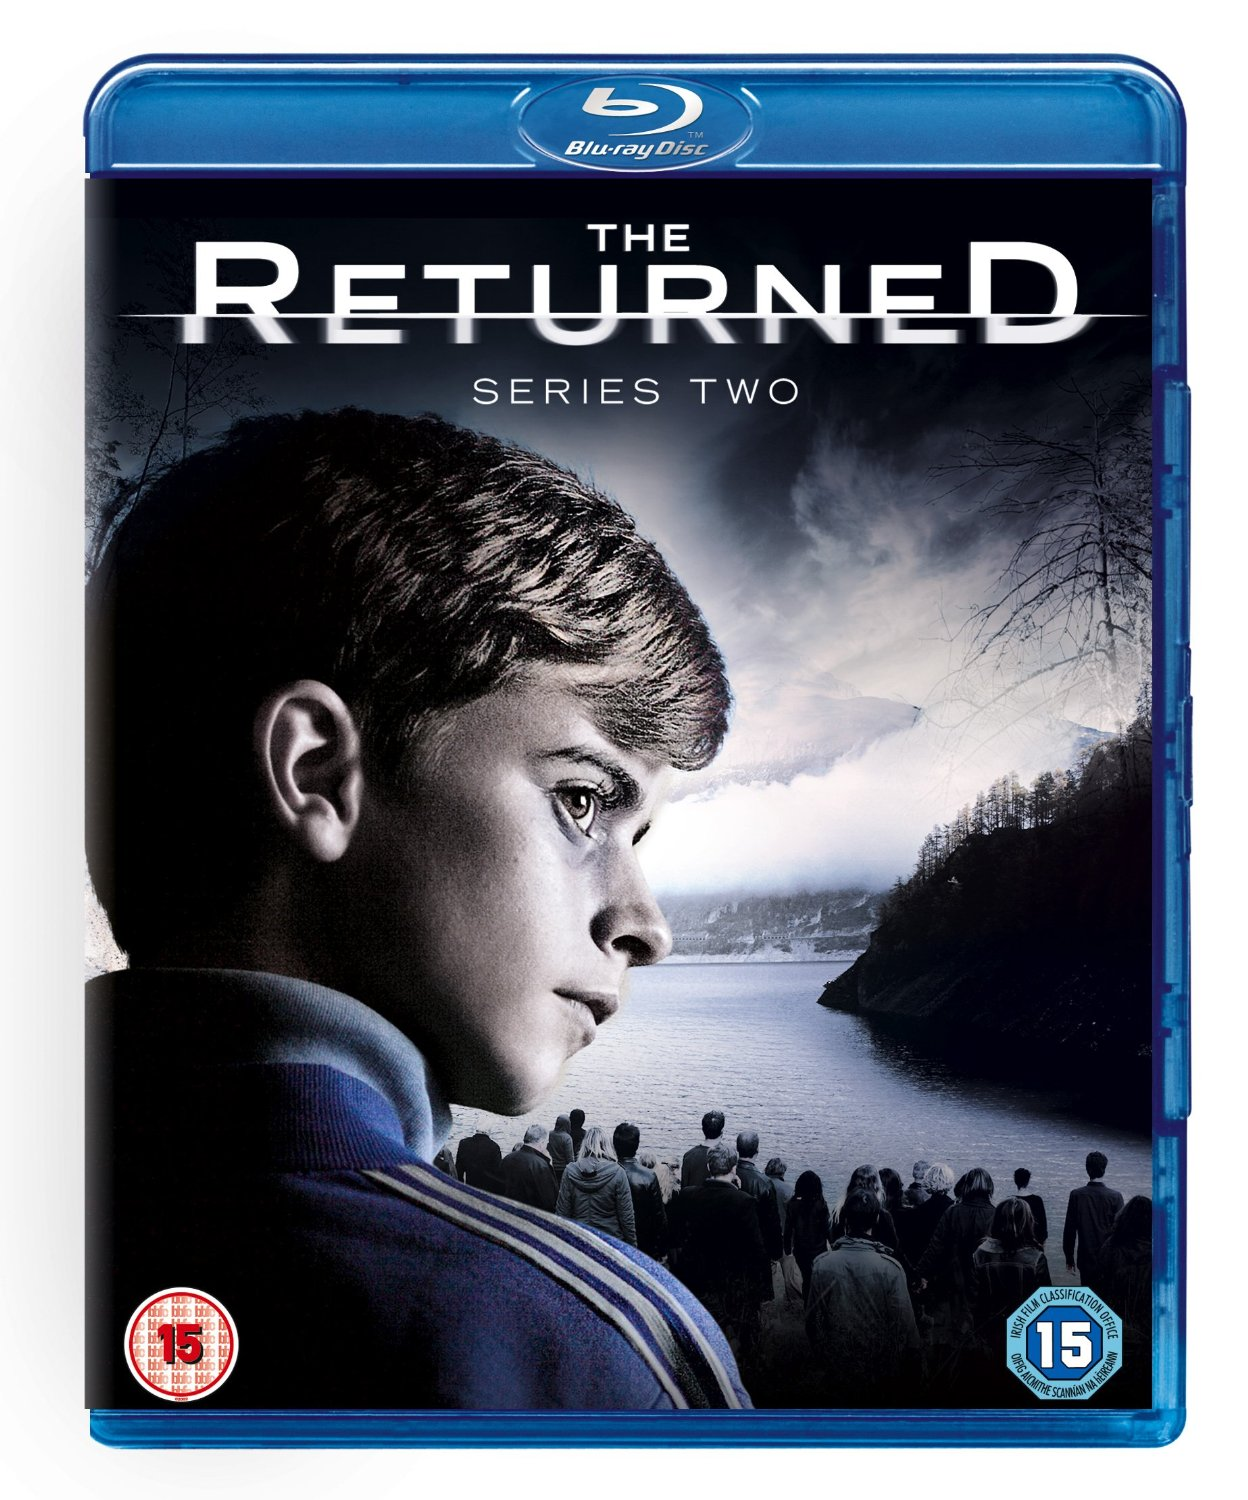 The Returned Series 2 Blu-ray review